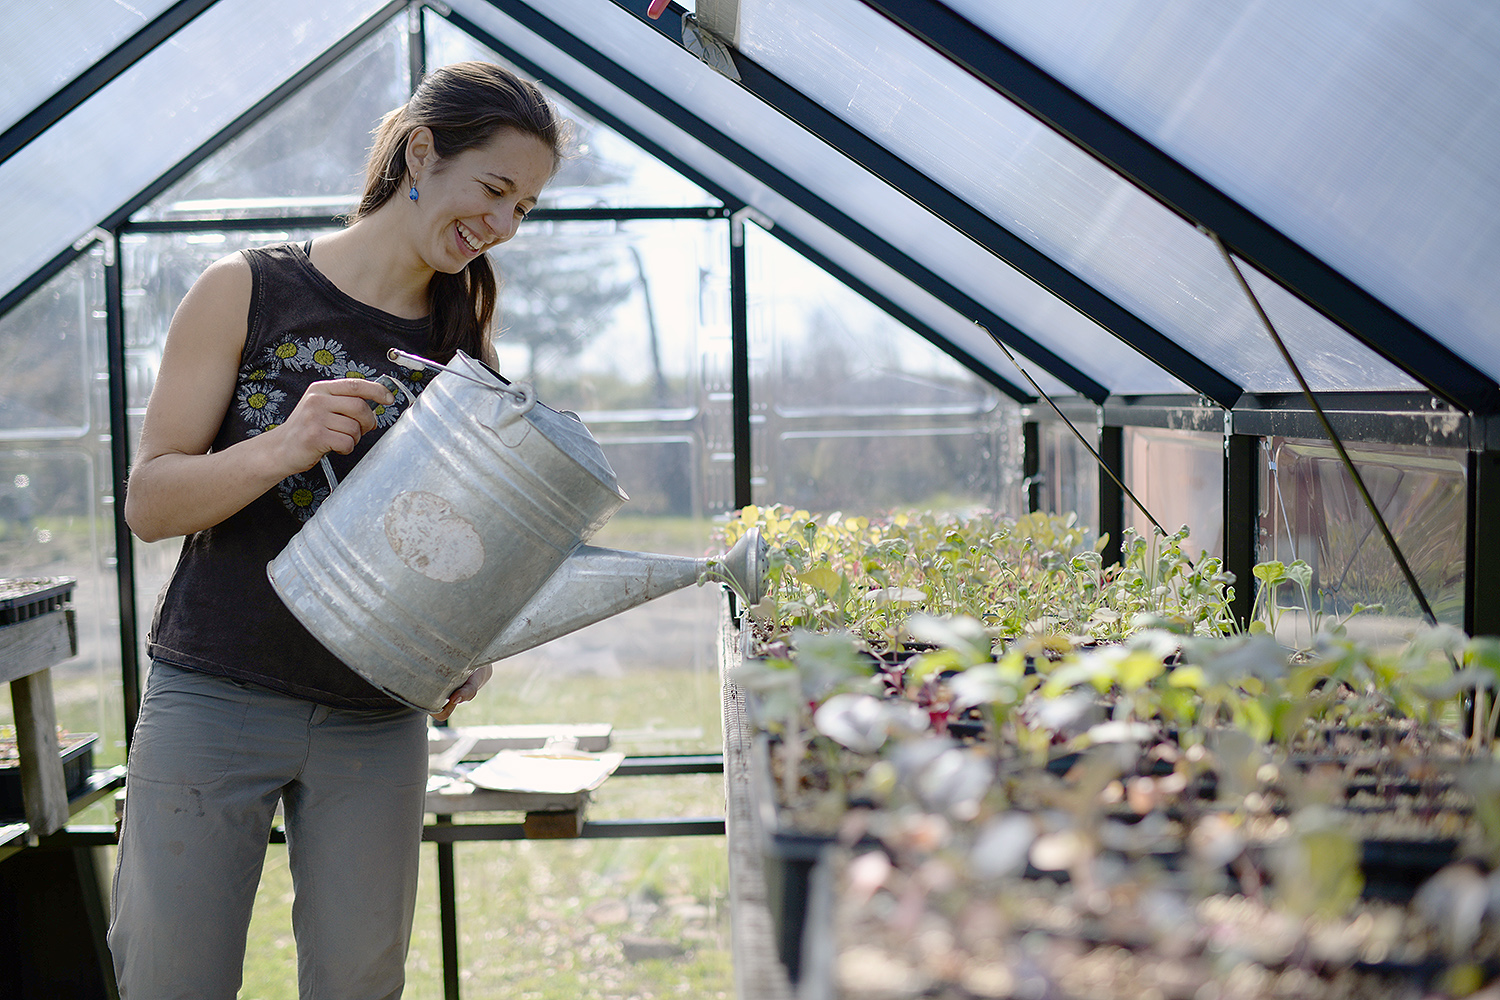 Hilary Brumberg '17 waters gypsy broccoli seedlings inside a new greenhouse at Long Lane Organic Farm on April 14. The greenhouse, funded by Wesleyan's Green Fund, allows the student farmers to grow plants earlier in the growing season. The seedlings will be transplanted into the farm once warm weather stabilizes. (Photo by Olivia Drake)